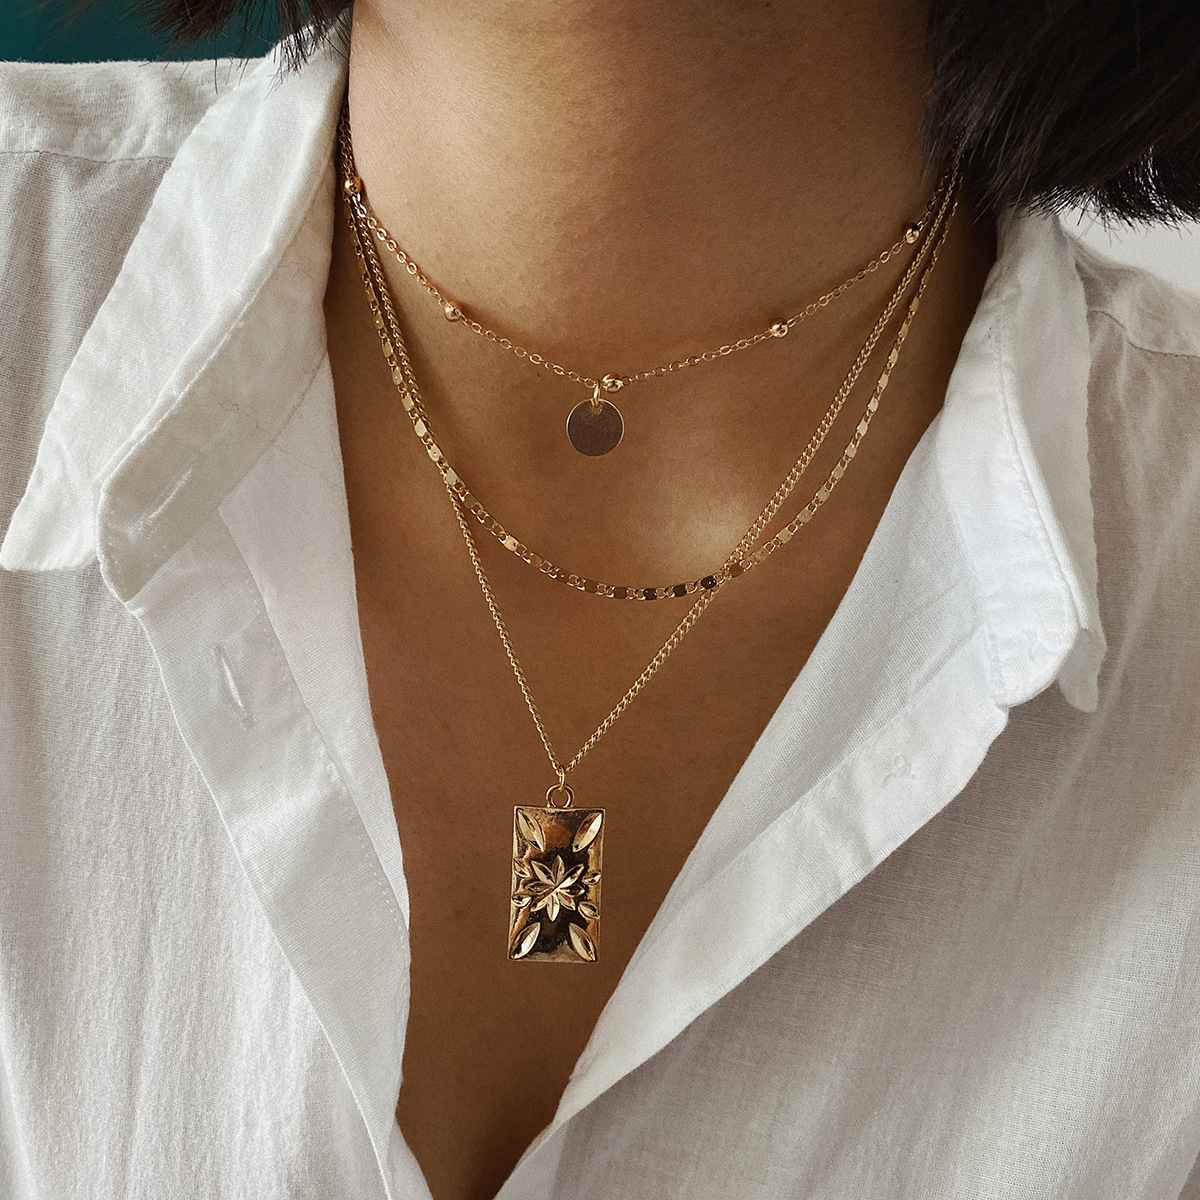 Sequin Pendant Bead Choker Vintage Carved Flower Square Necklaces for Women Gold Silver Color Layered Necklace Female Simple New